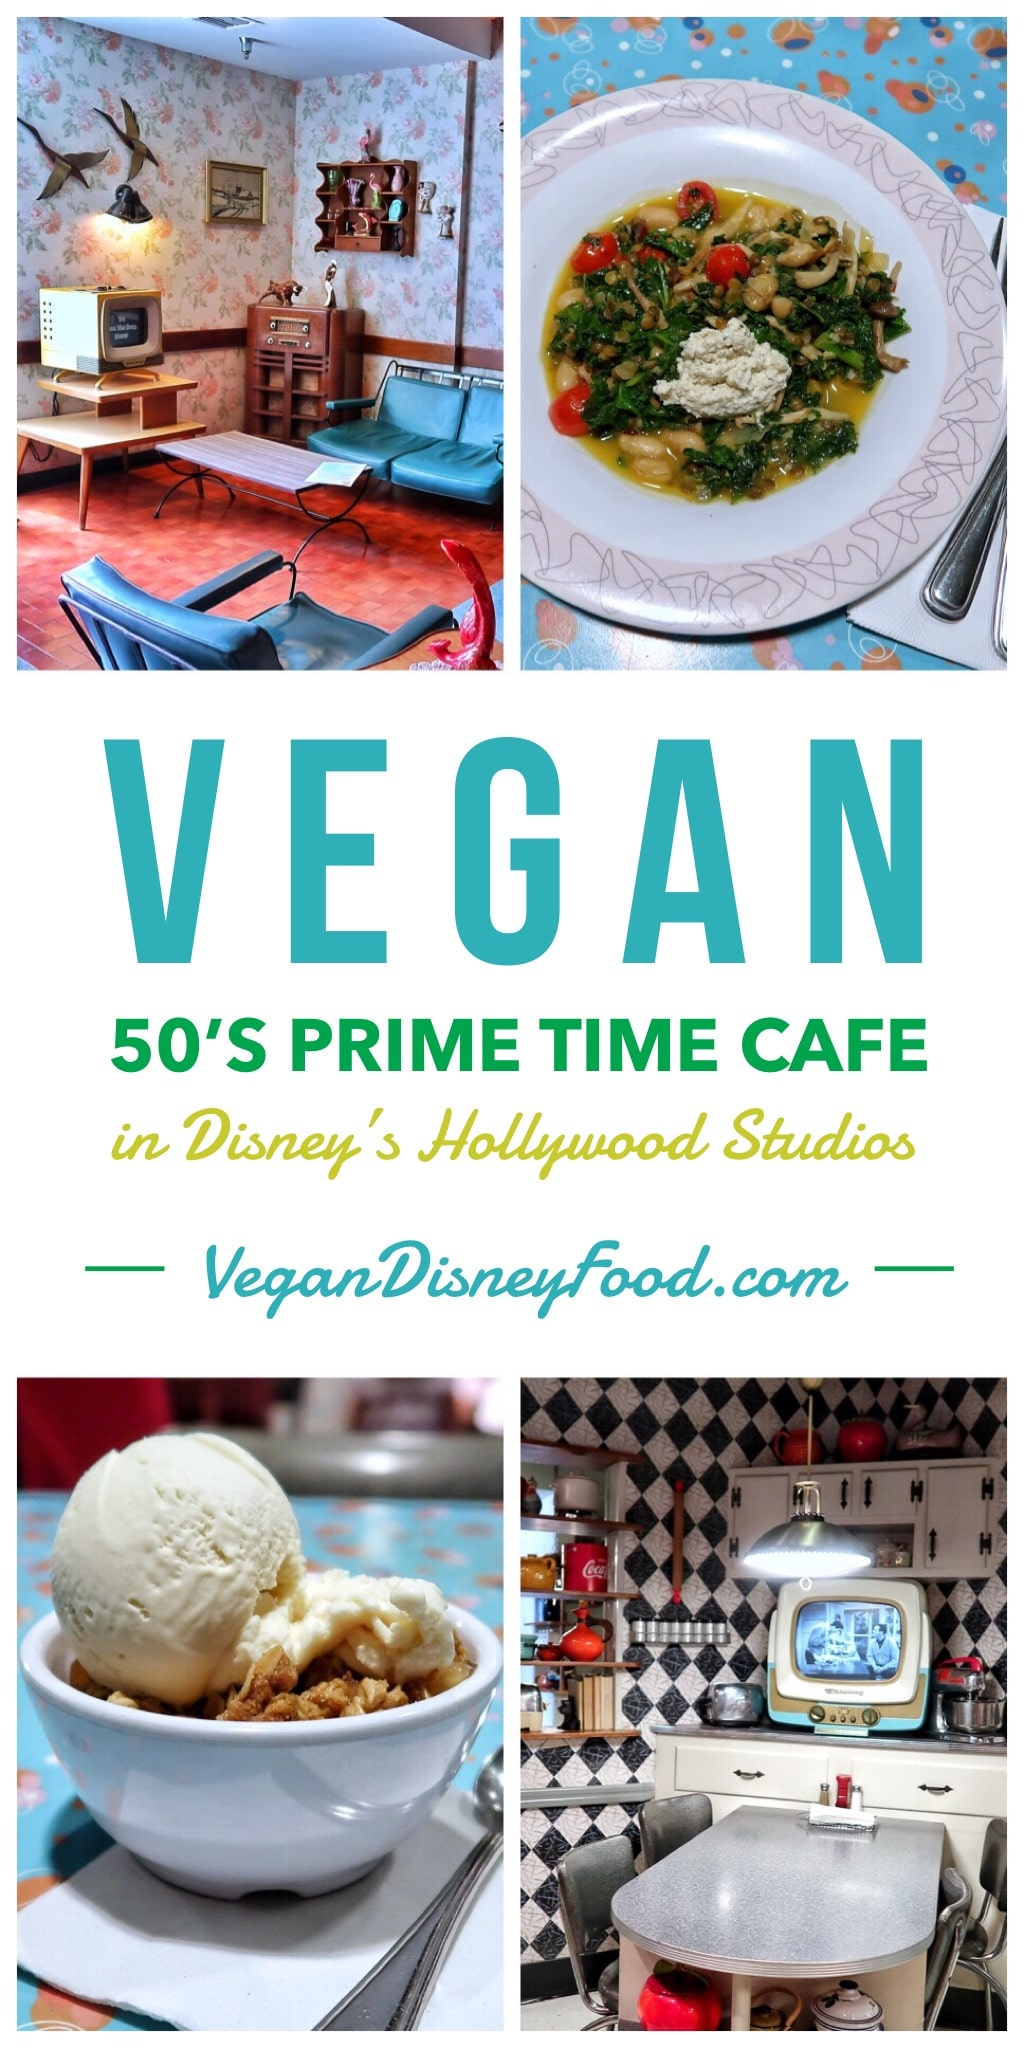 Vegan Options at 50's Prime Time Cafe in Disney's Hollywood Studios at Walt Disney World